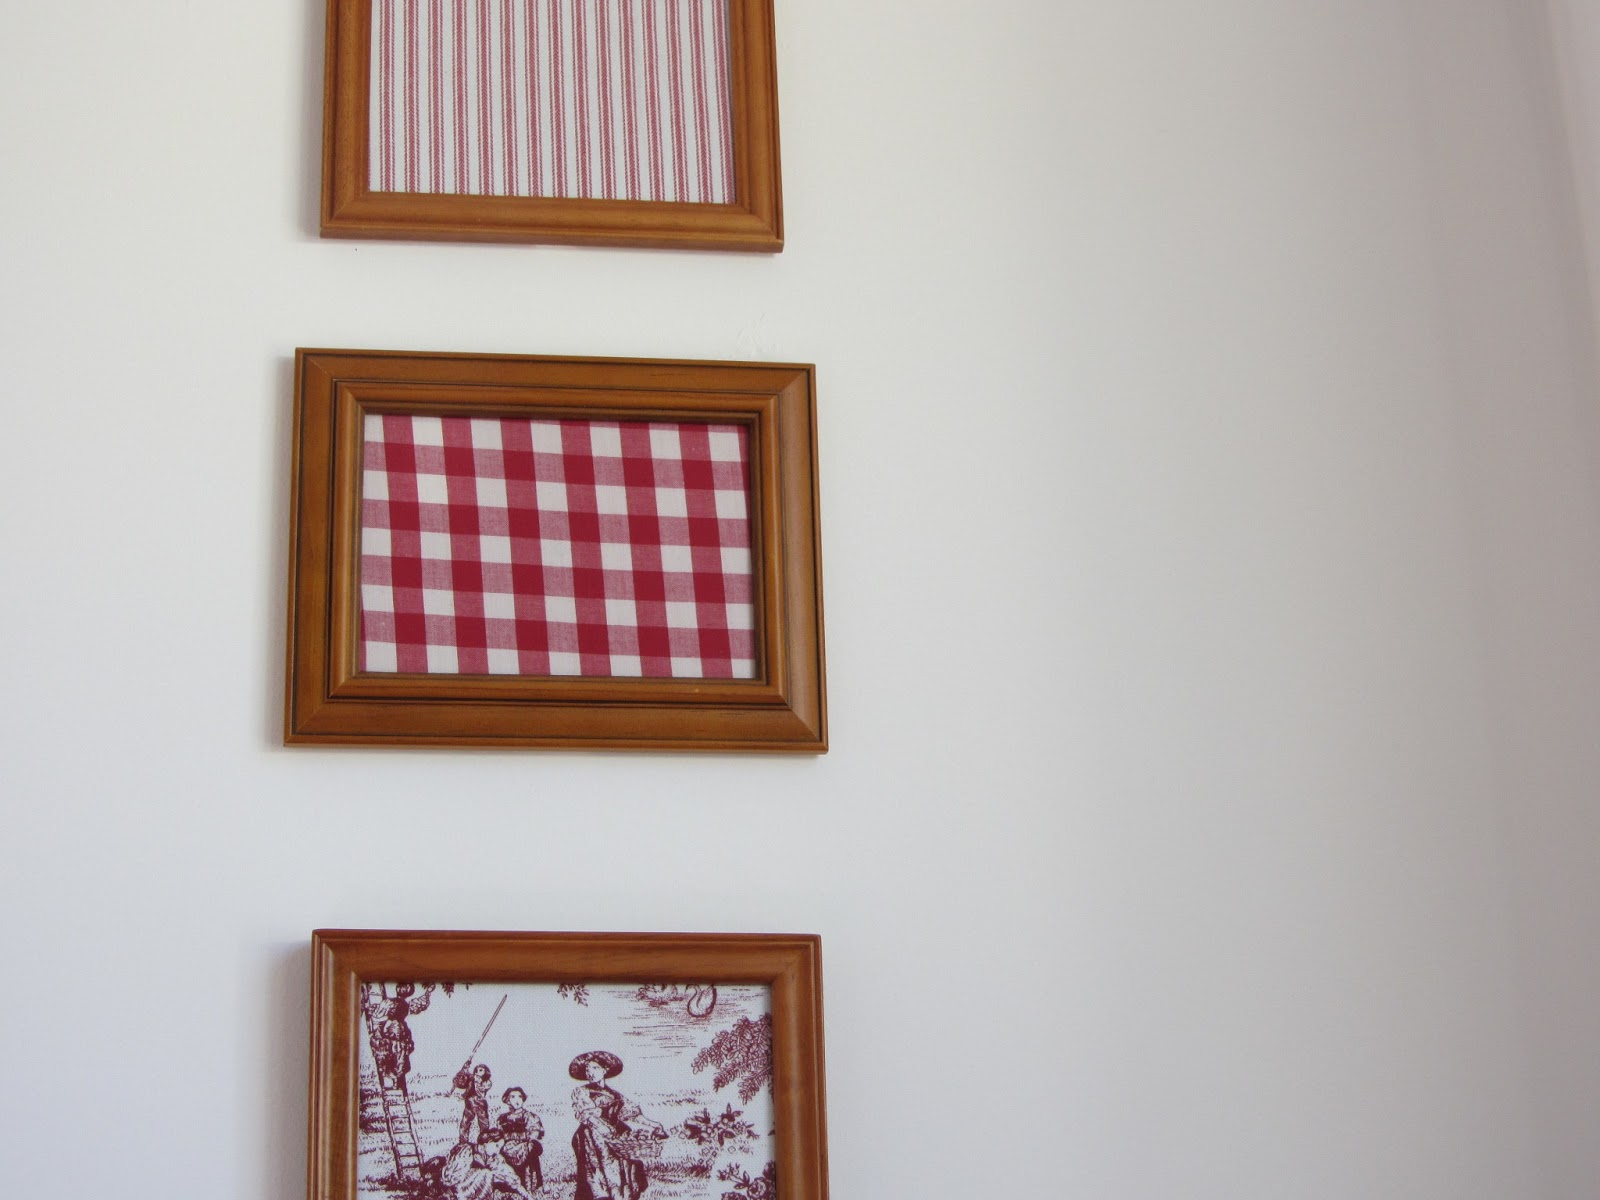 thom haus handmade: Cheap Decorating with Fabric in Old Photo Frames